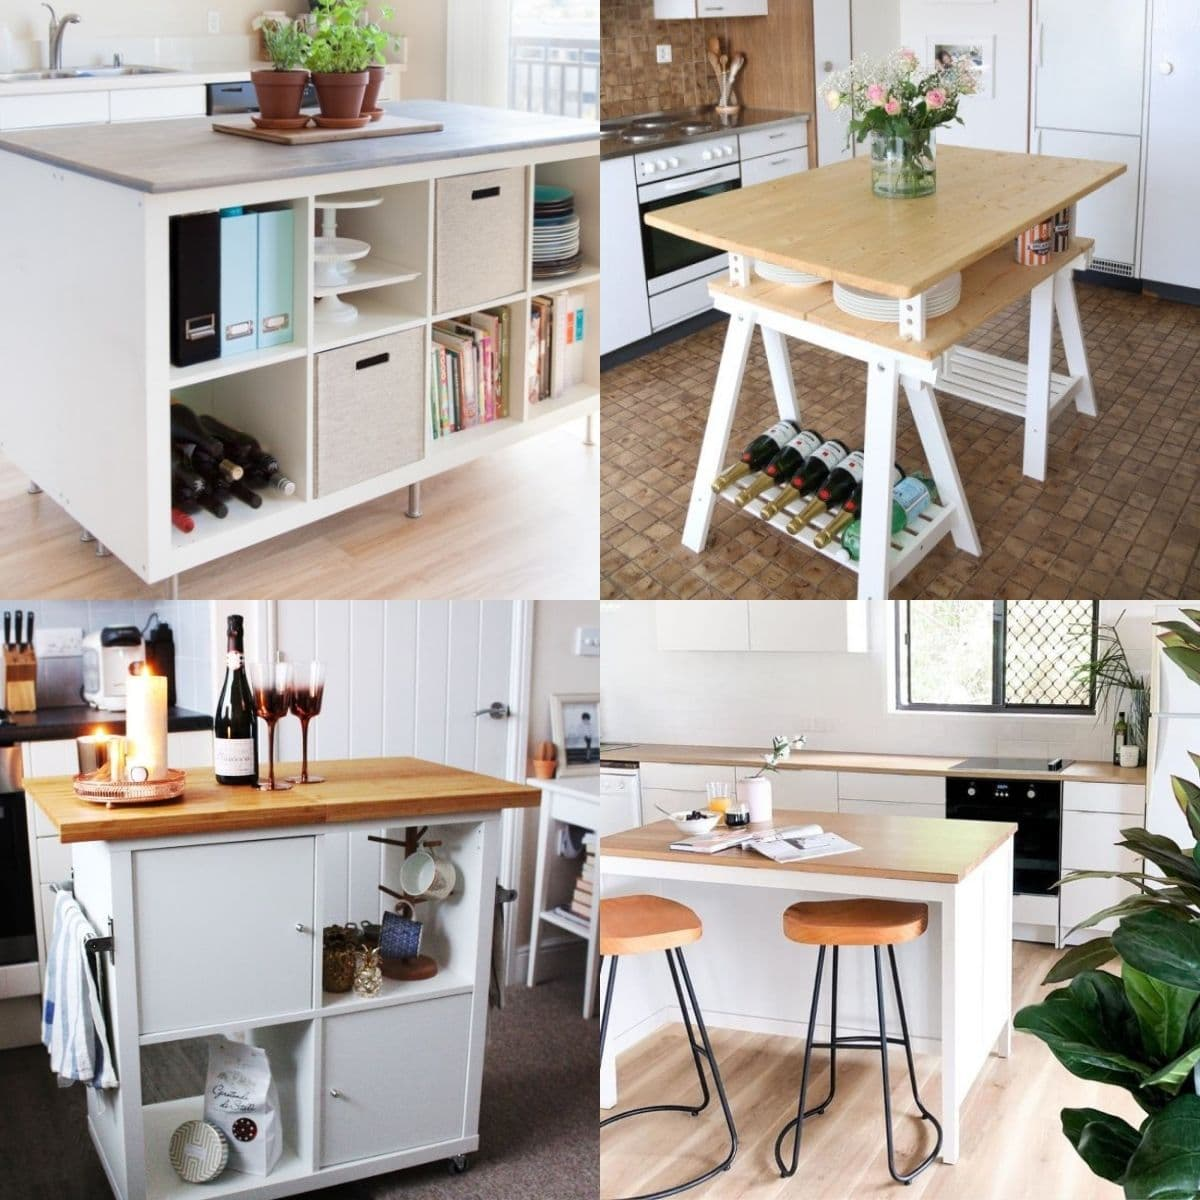 20 Creative Ikea Kitchen Island Ideas Craftsy Hacks This will come in handy if you don't have much counter space, don't have a linen closet, need some extra shelves somewhere, etc. 20 creative ikea kitchen island ideas